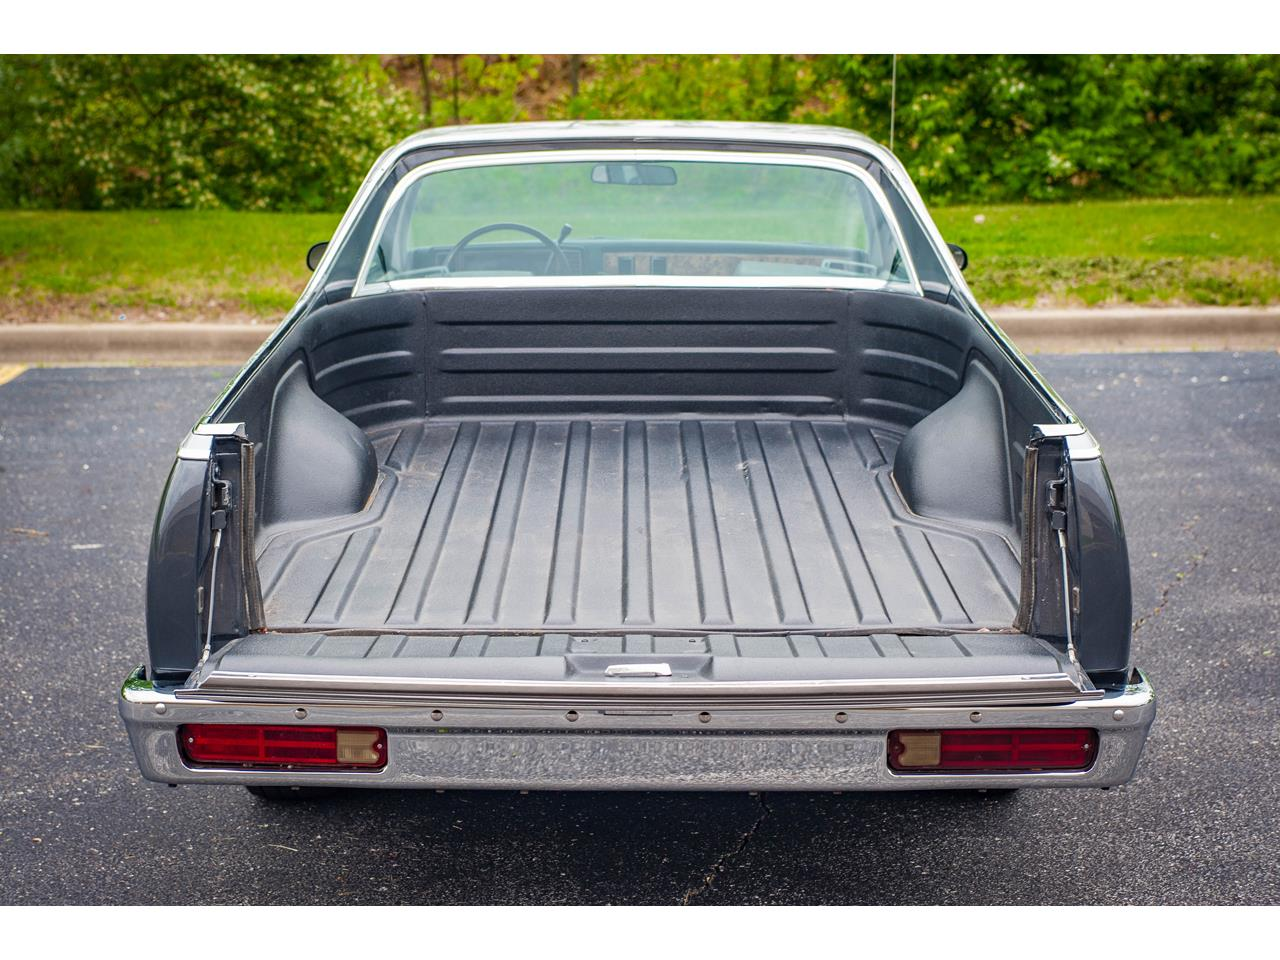 Large Picture of '82 Chevrolet El Camino - $13,000.00 - QB9A